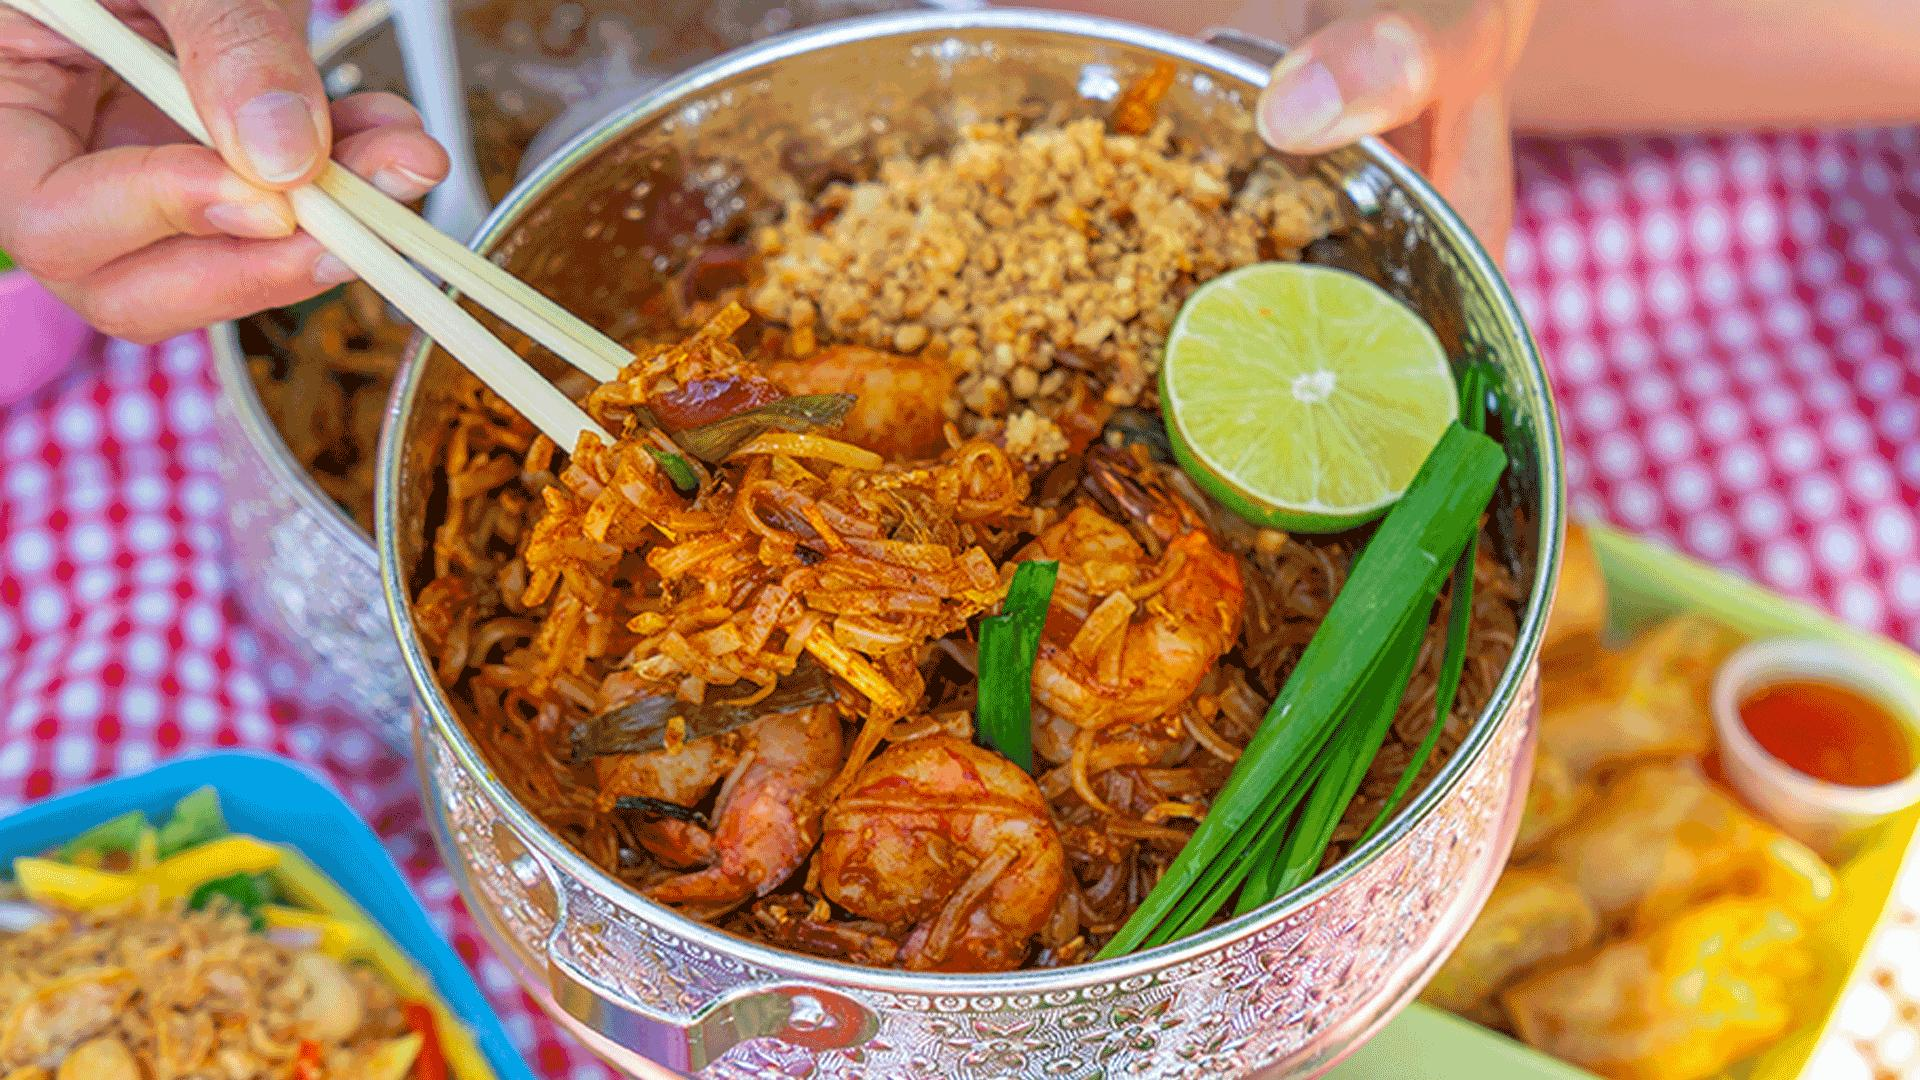 Must-try picnic baskets from Toronto restaurants   Pad Thai from Jatujak